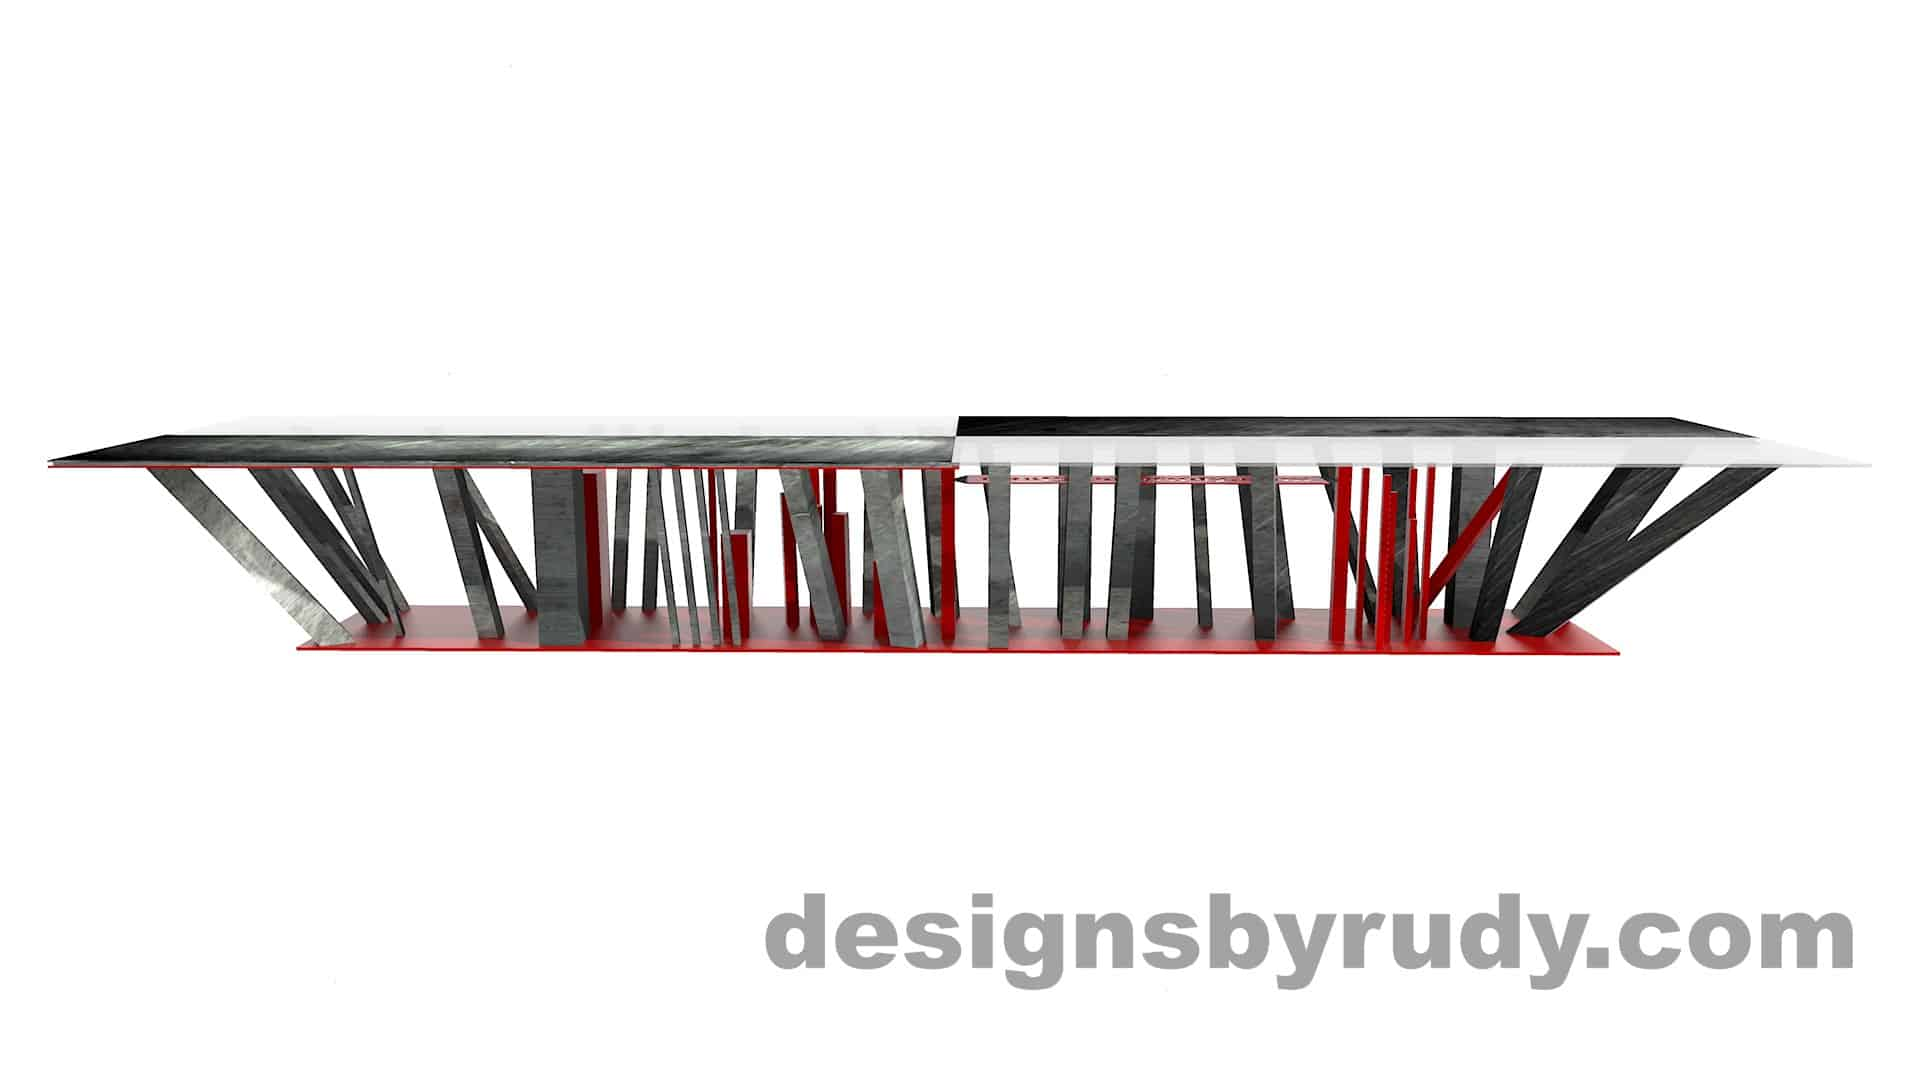 Custom conference table, steel base, glass and steel top, side view, by designs by rudy